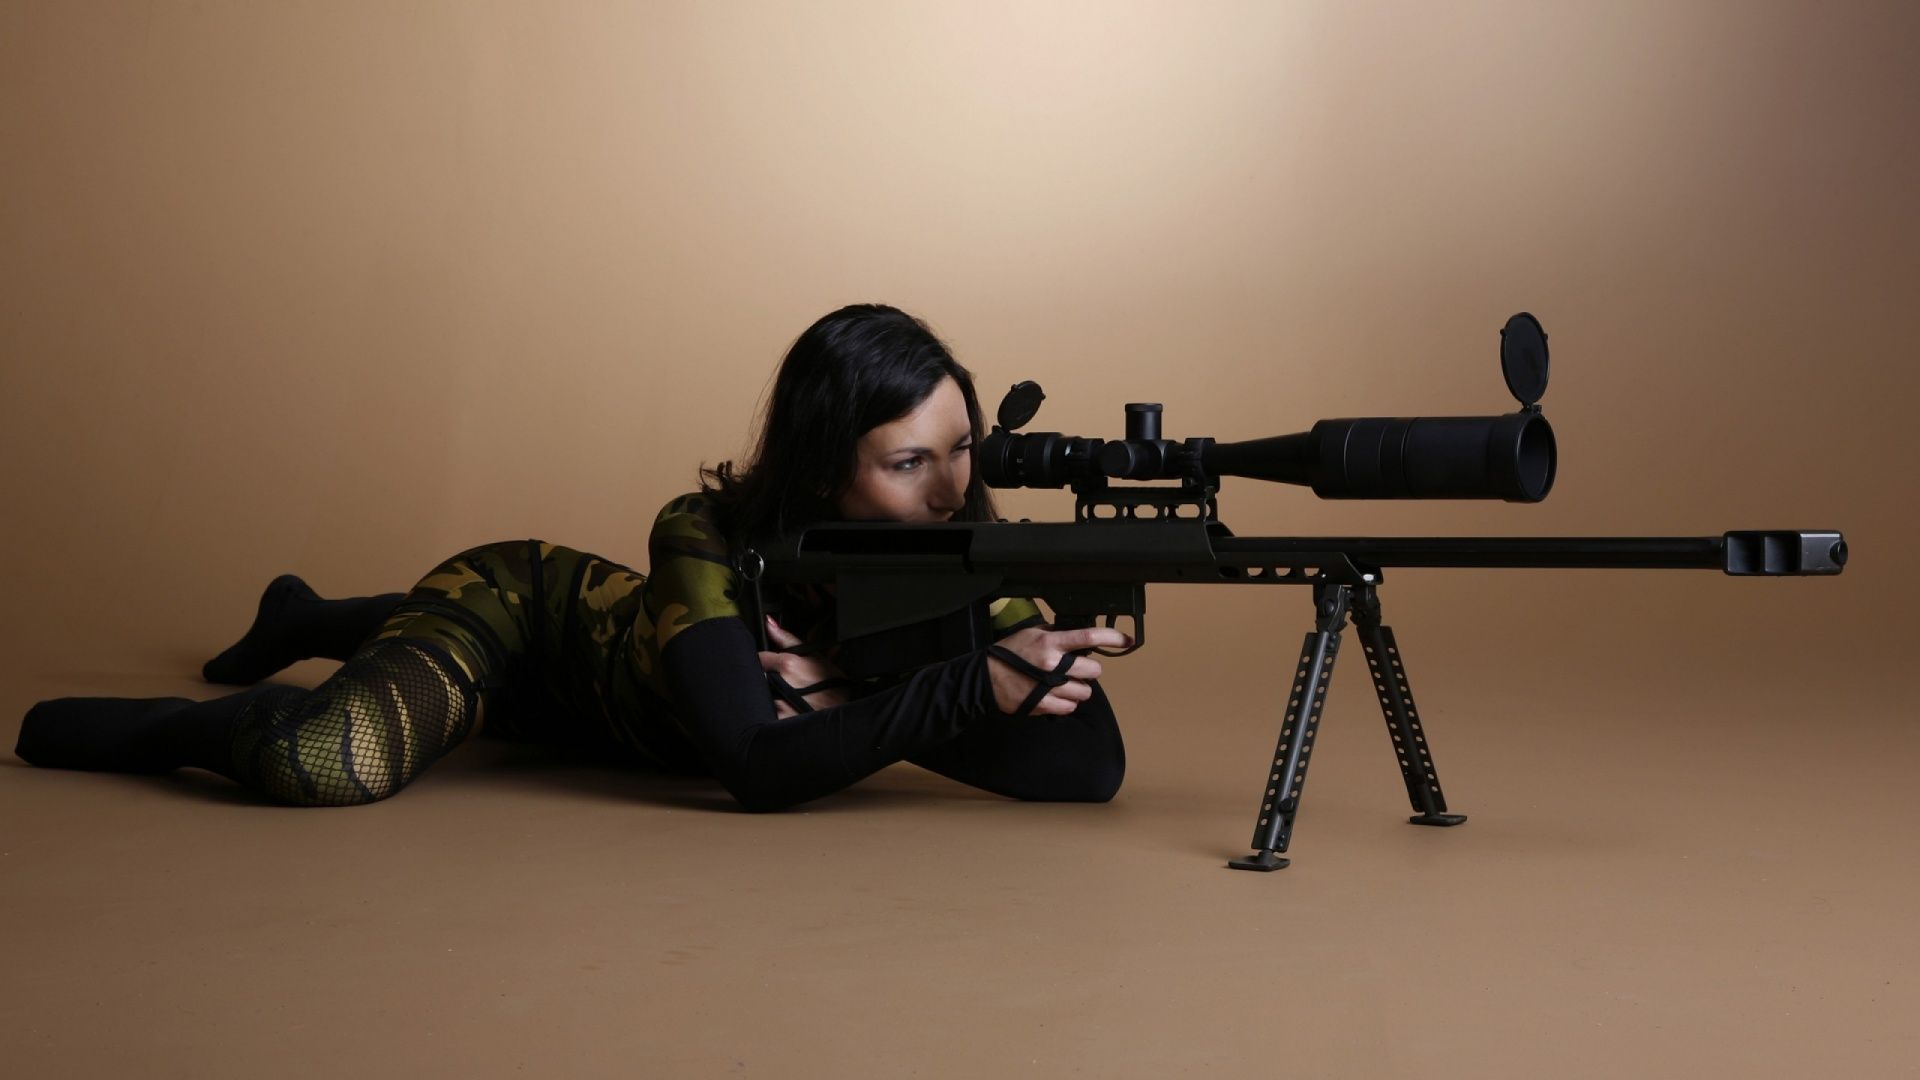 108 Best Images About Weapons Wallpapers On Pinterest: Sniper Wallpaper 257595